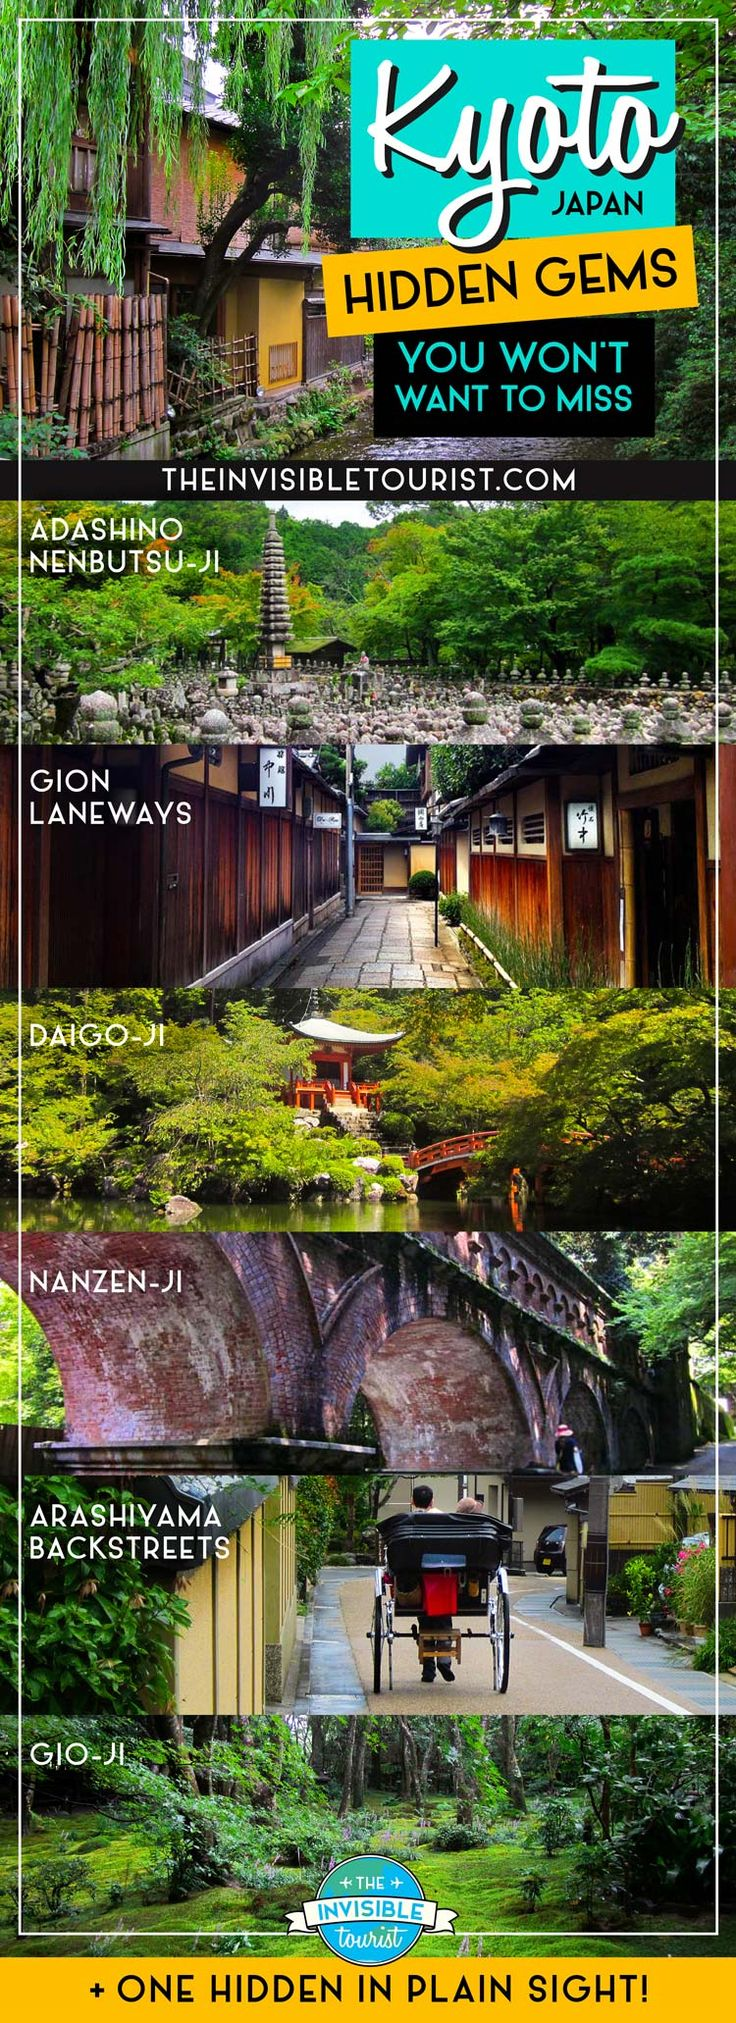 Kyoto Hidden Gems You Won't Want to Miss | The Invisible Tourist